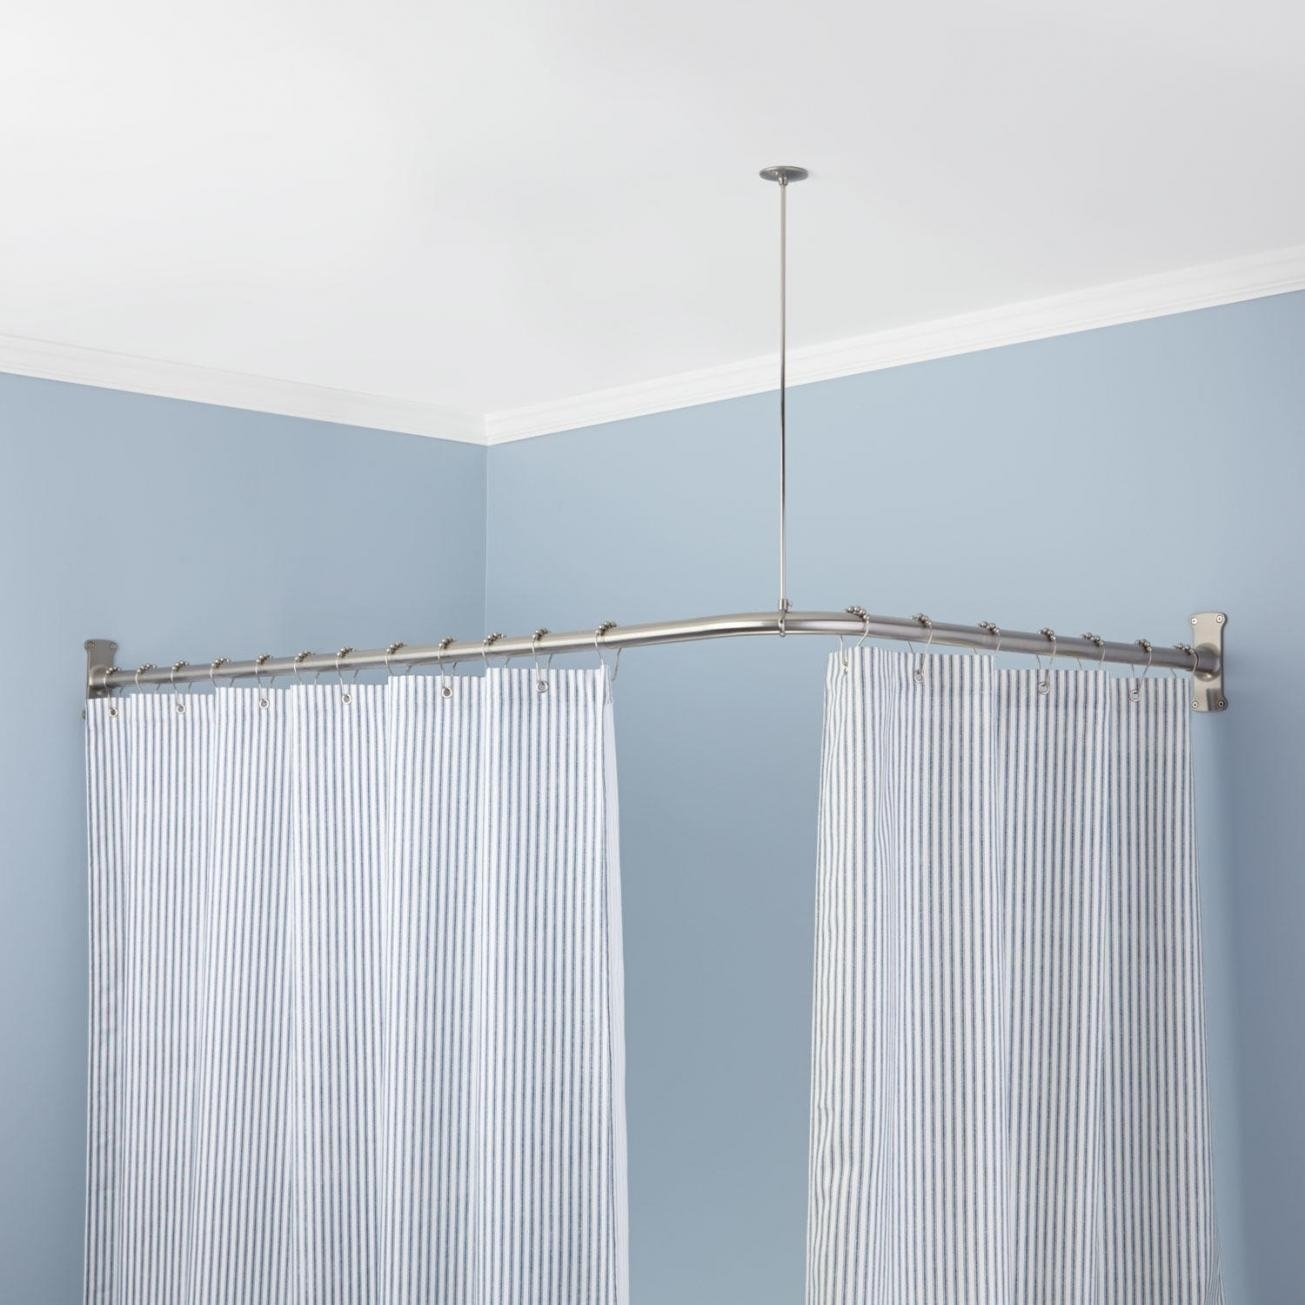 Odd Shaped Shower Curtain Rods Cgoioc Site Cgoioc Site For Odd Shower Curtains (Image 19 of 25)